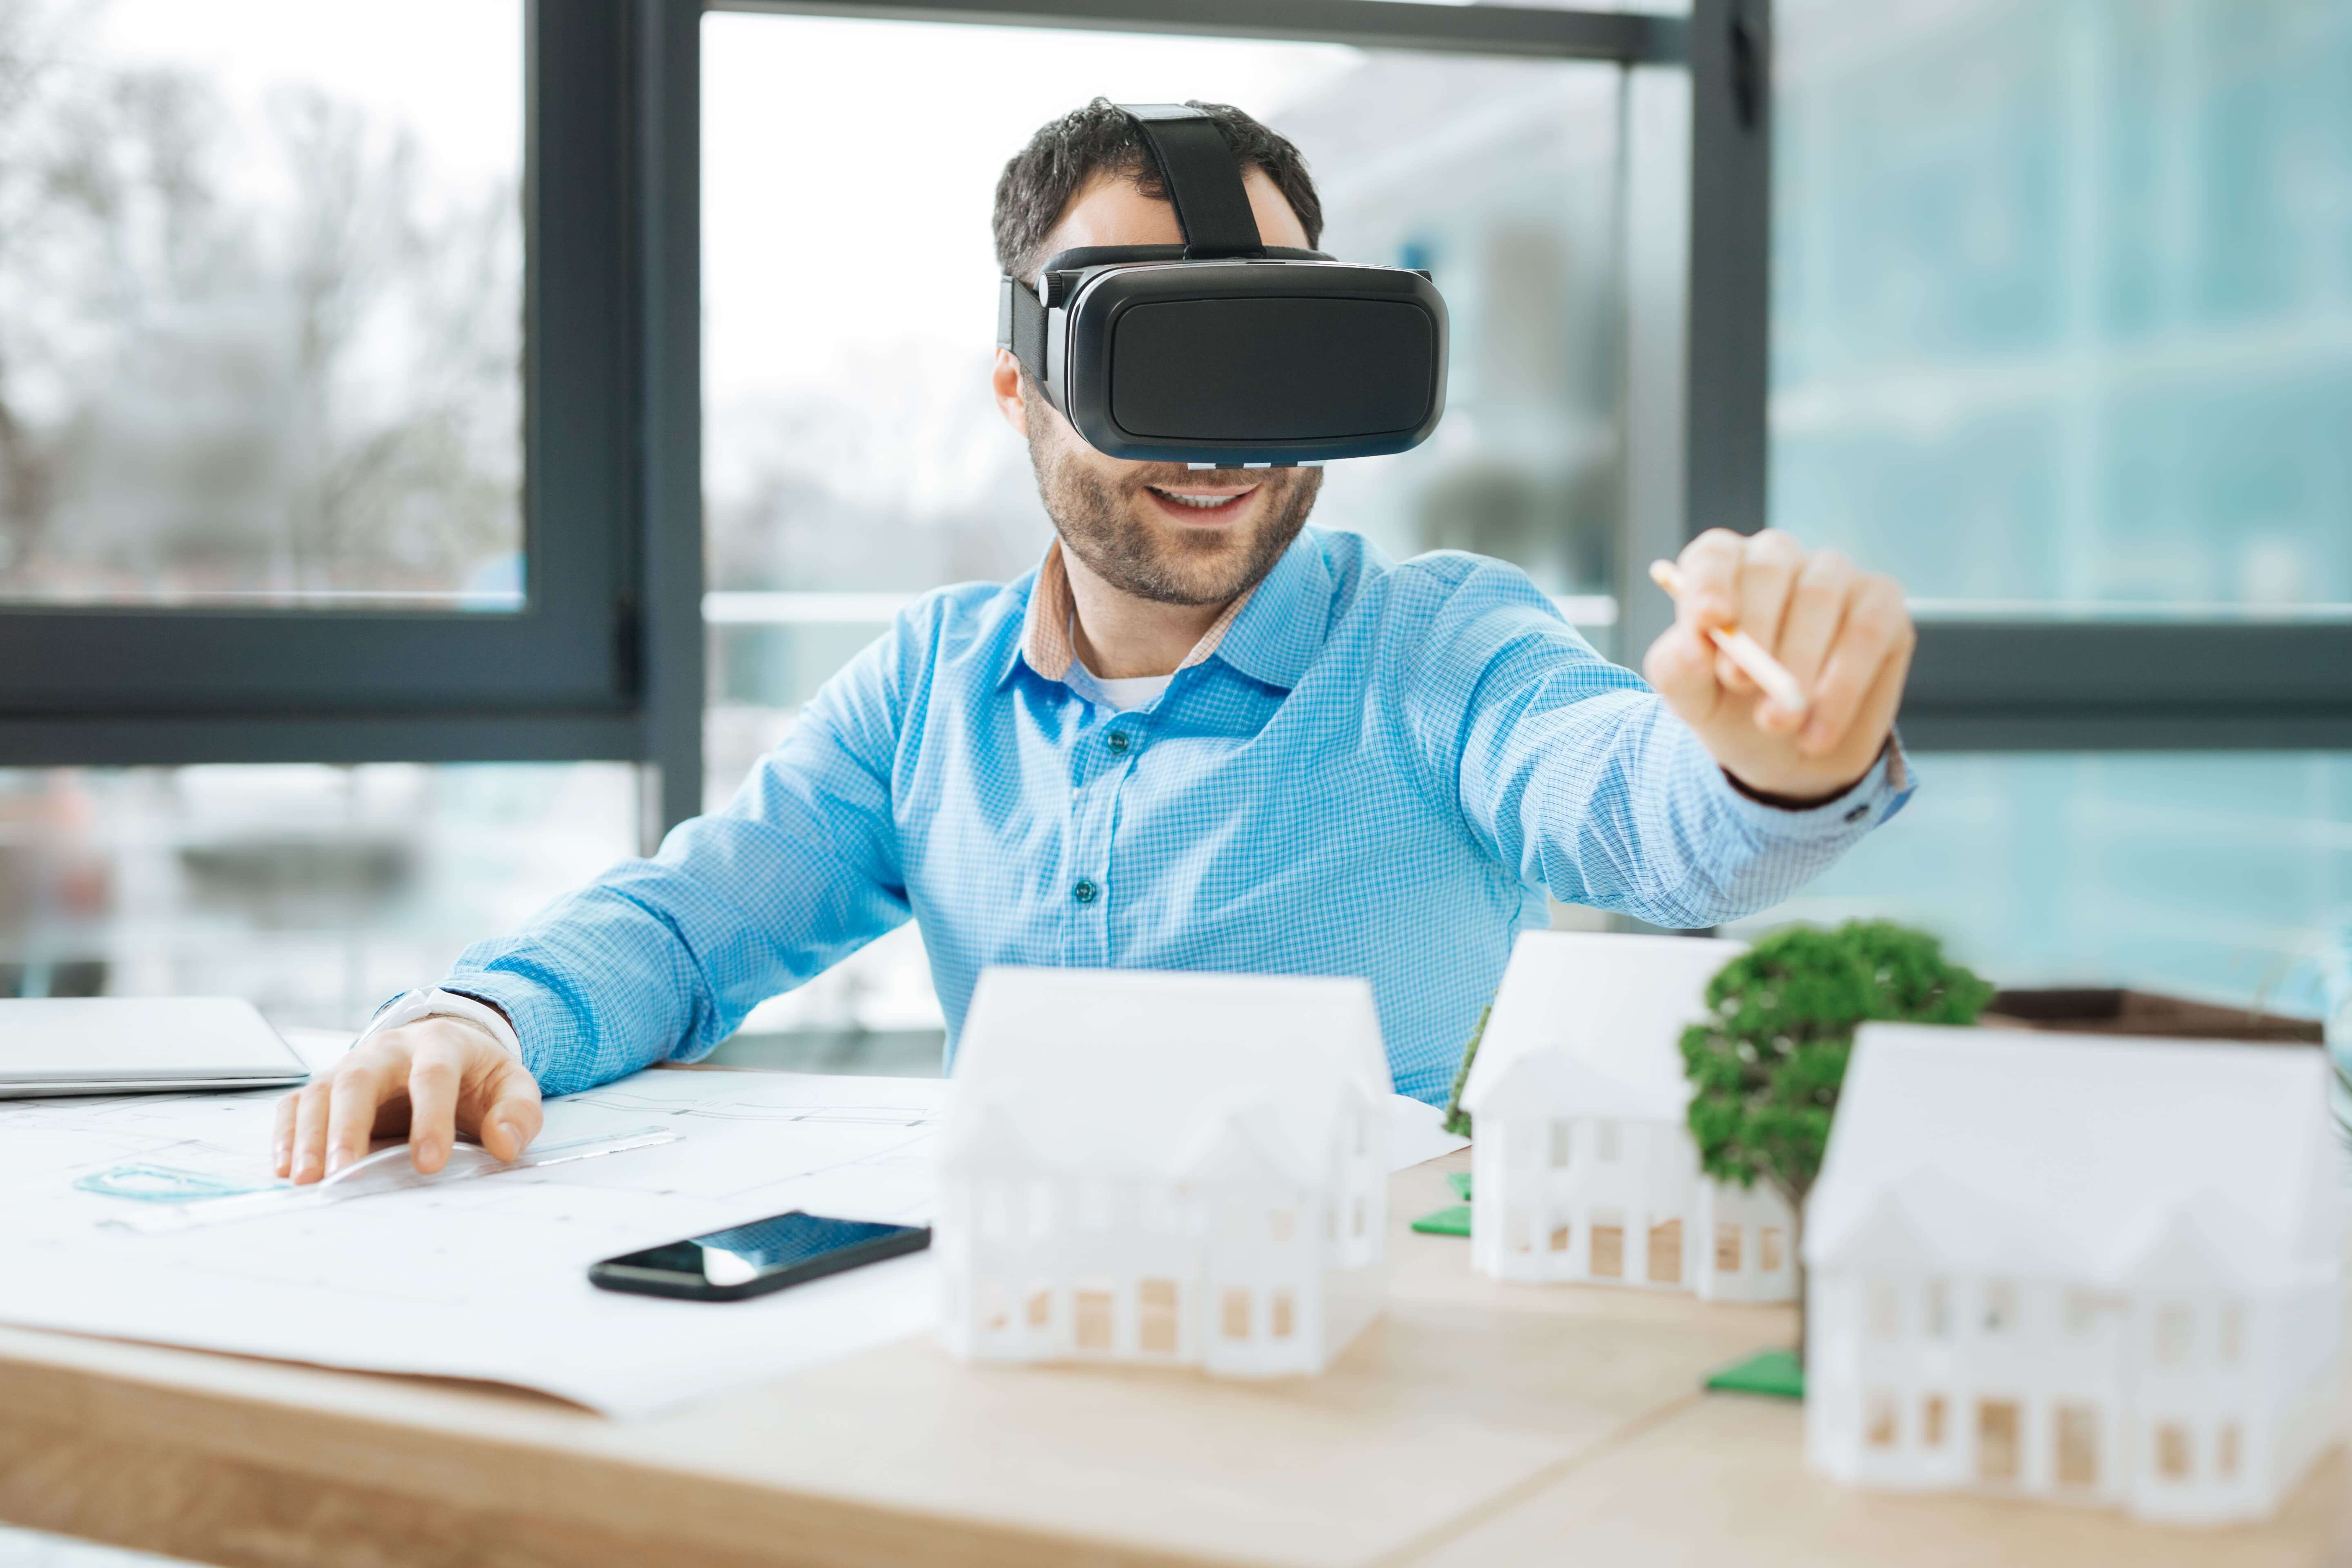 How to Effectively Use VR Technology When Selling a Home